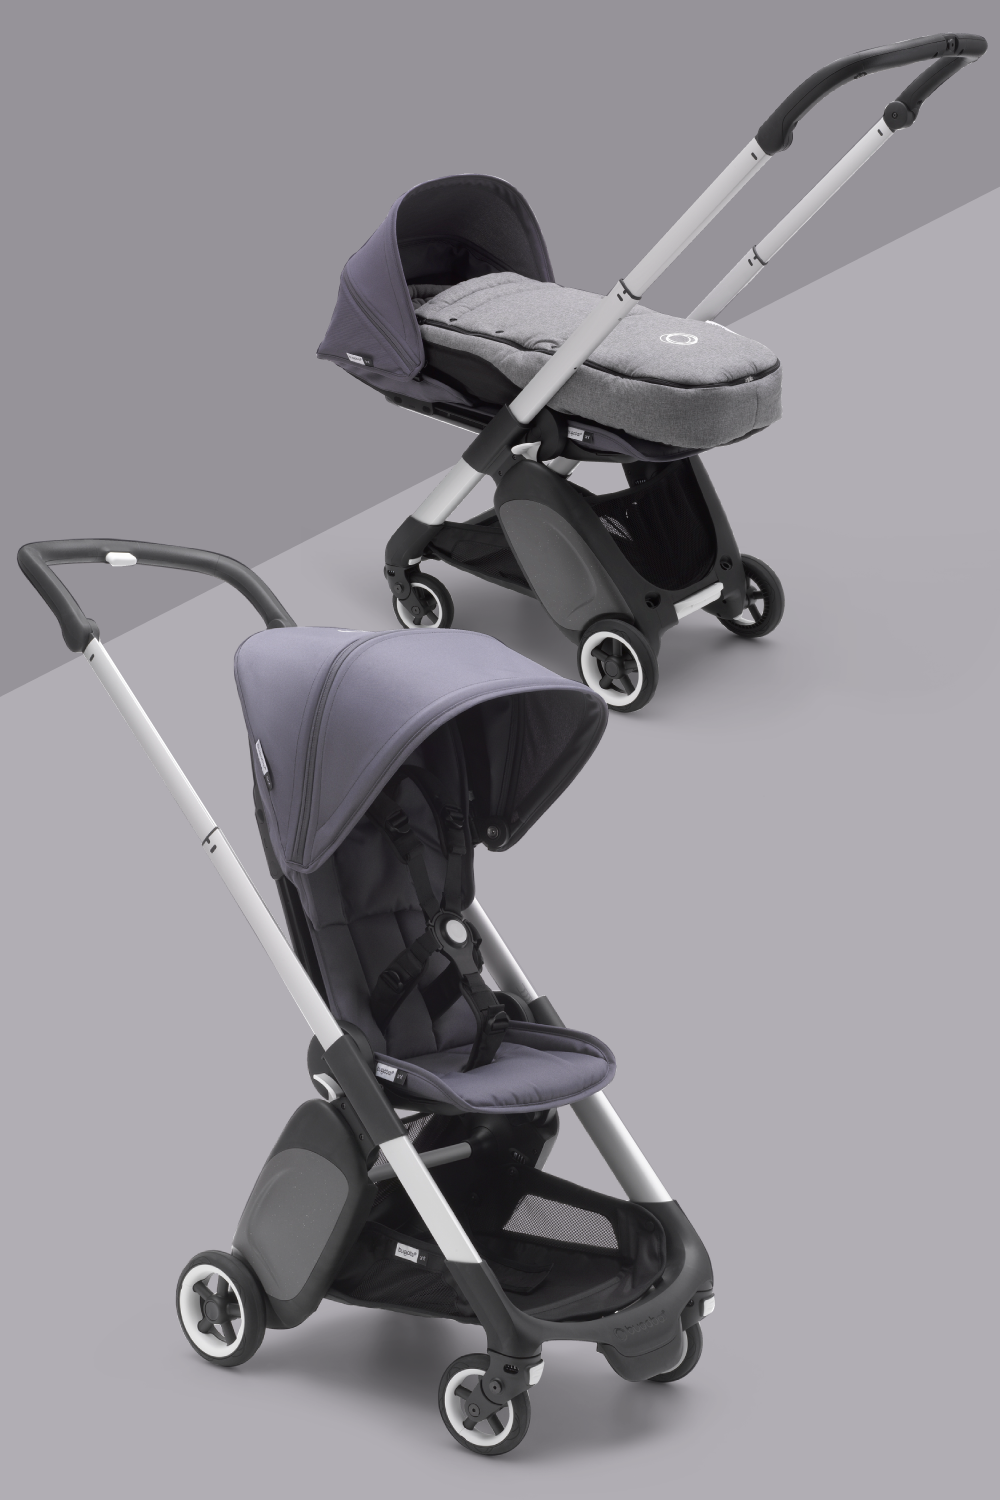 Bugaboo Ant Complete Stroller (With images) | Stroller ...